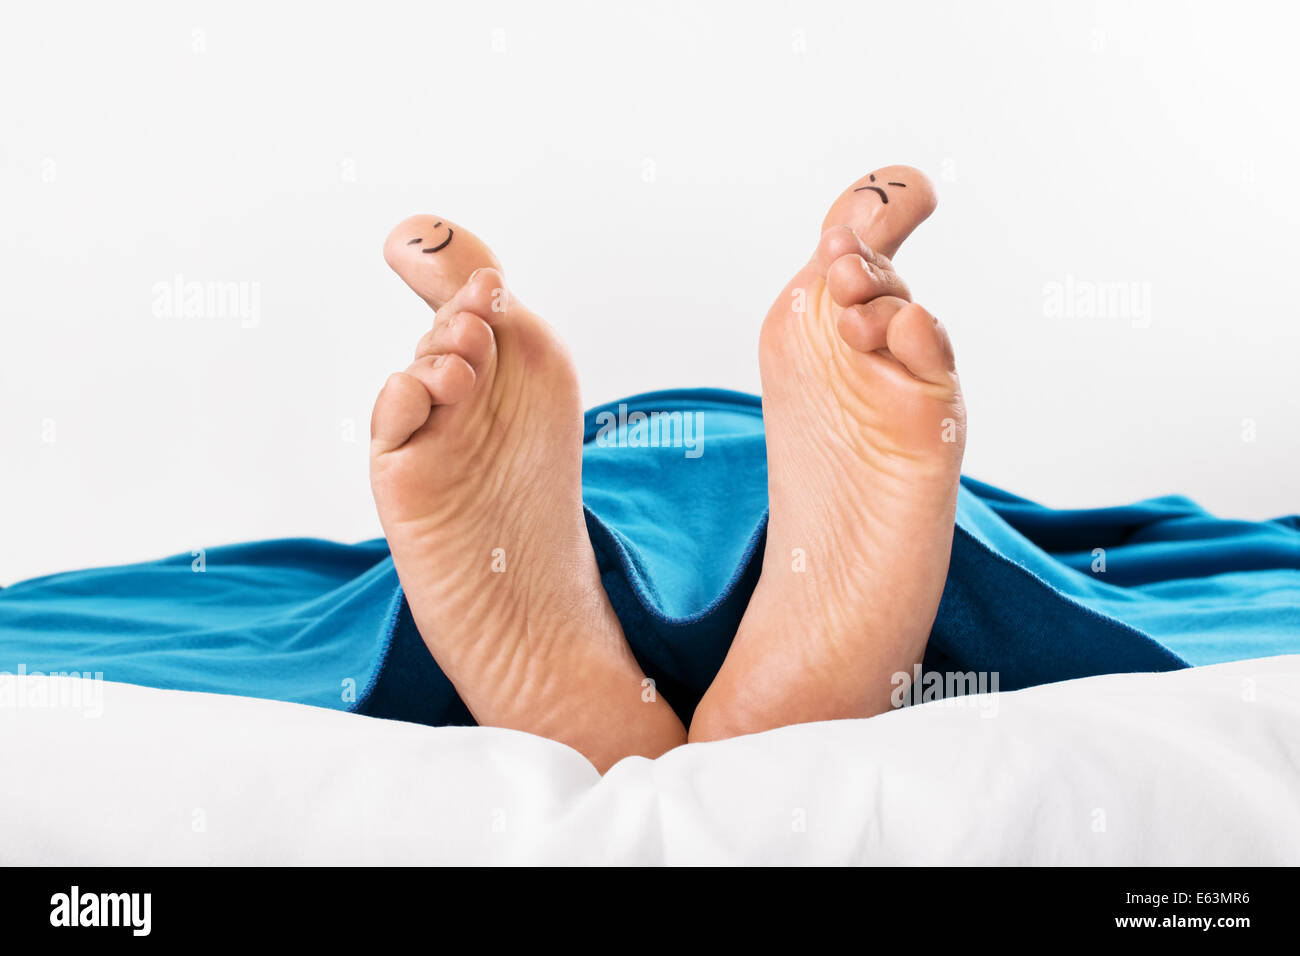 Human feet with smiley and grumpy drawn on them - Stock Image